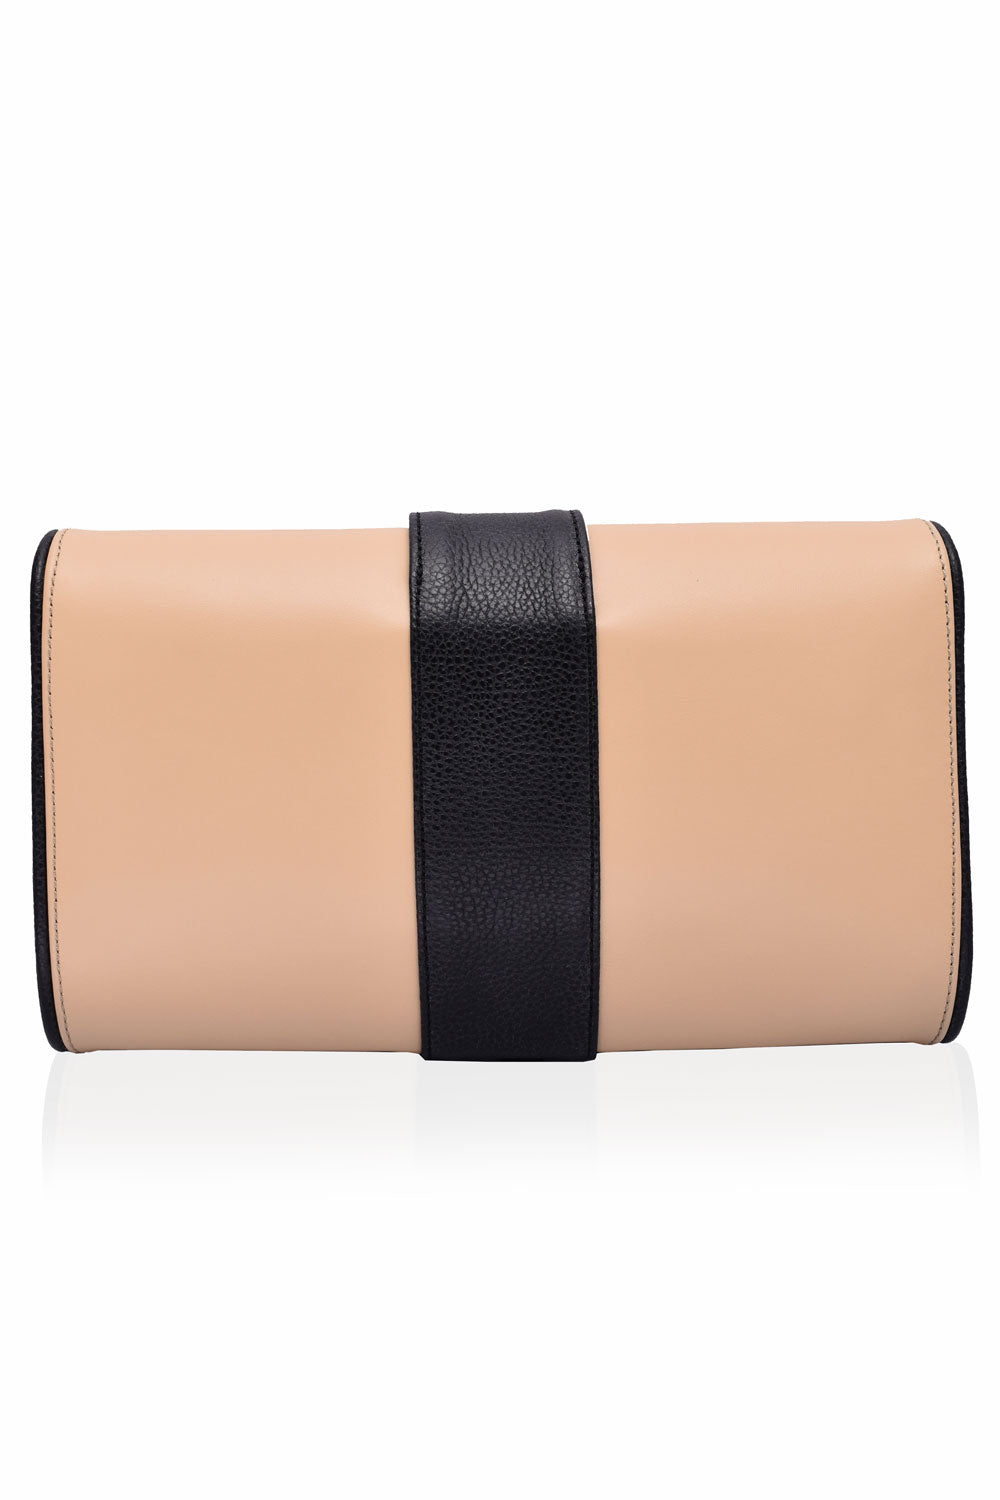 'Lauren' Camel & Black Leather Clutch and Shoulder Bag | Mel Boteri | Back View